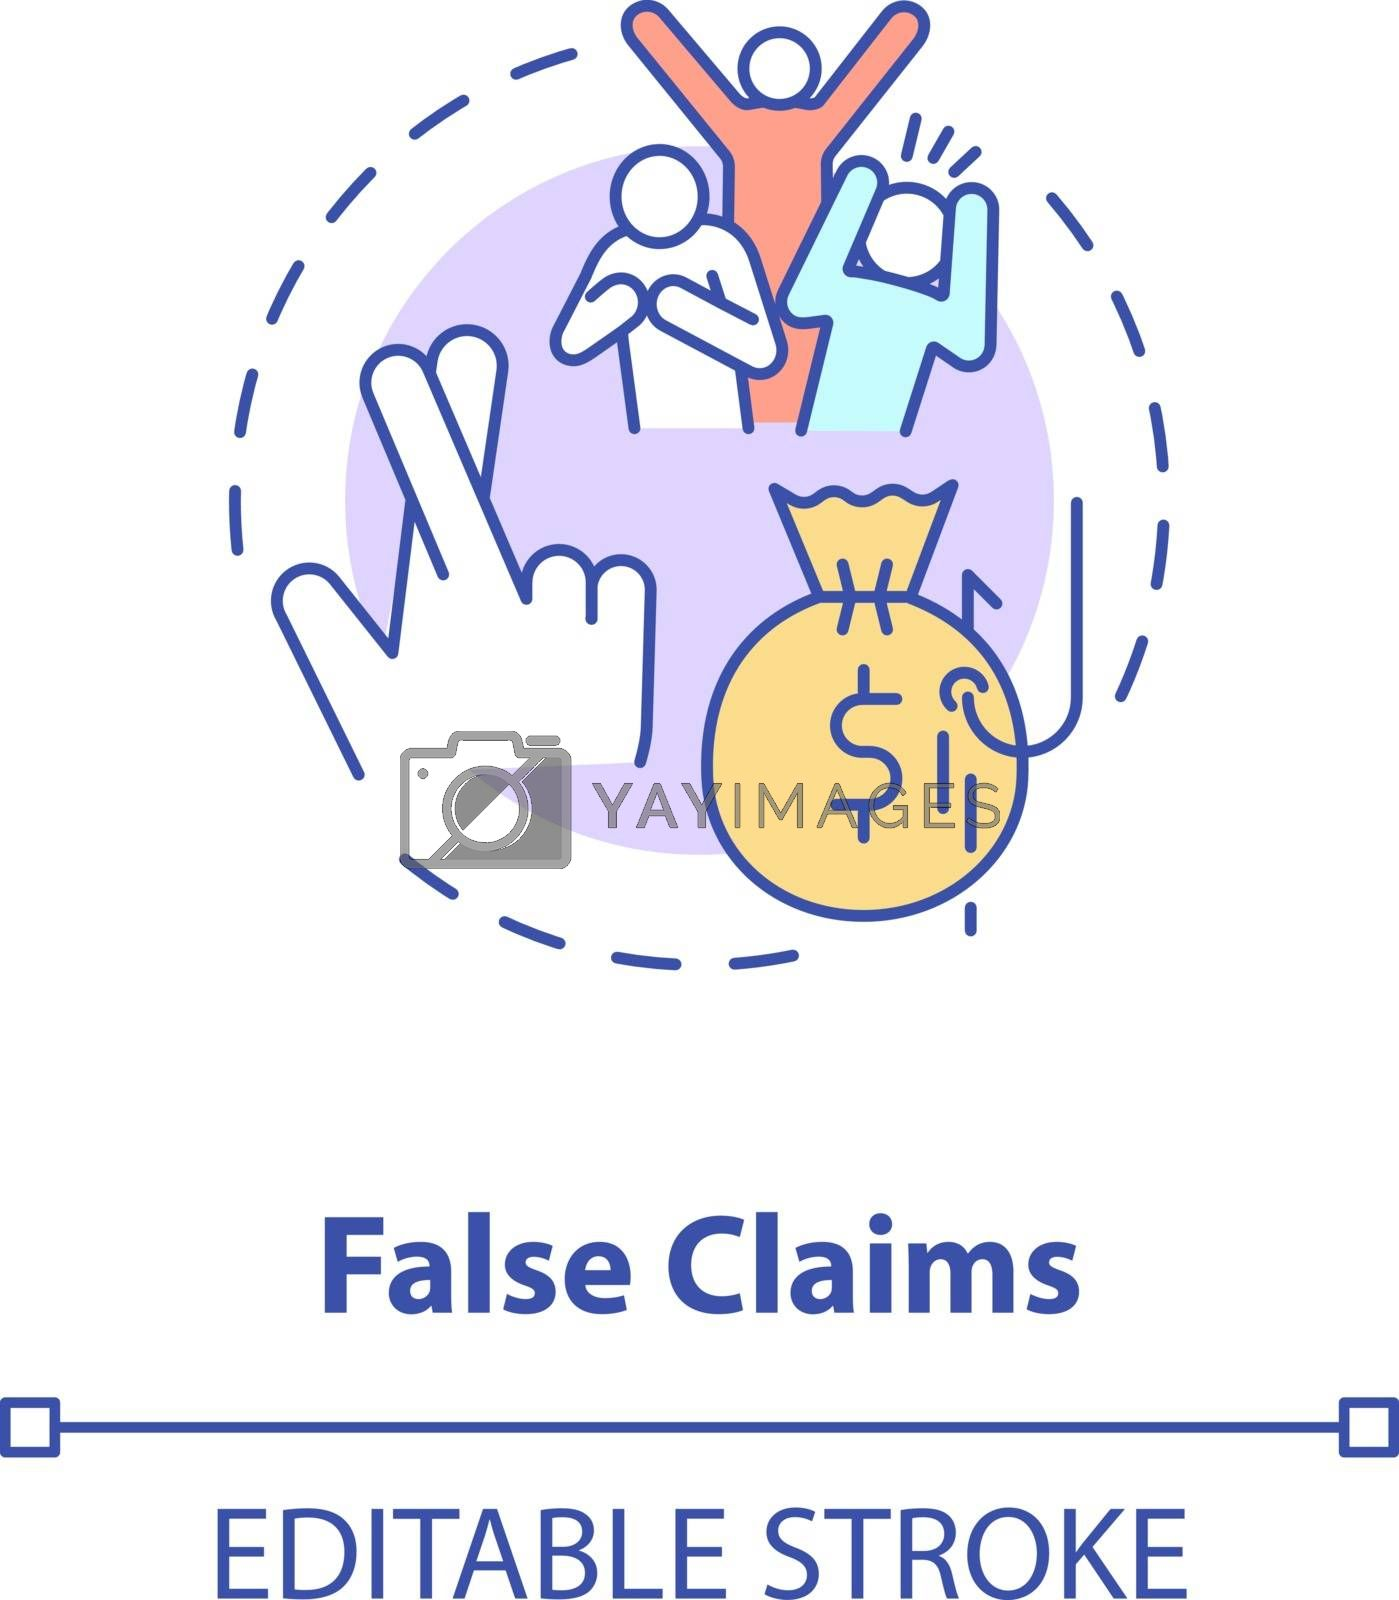 False claims concept icon by bsd